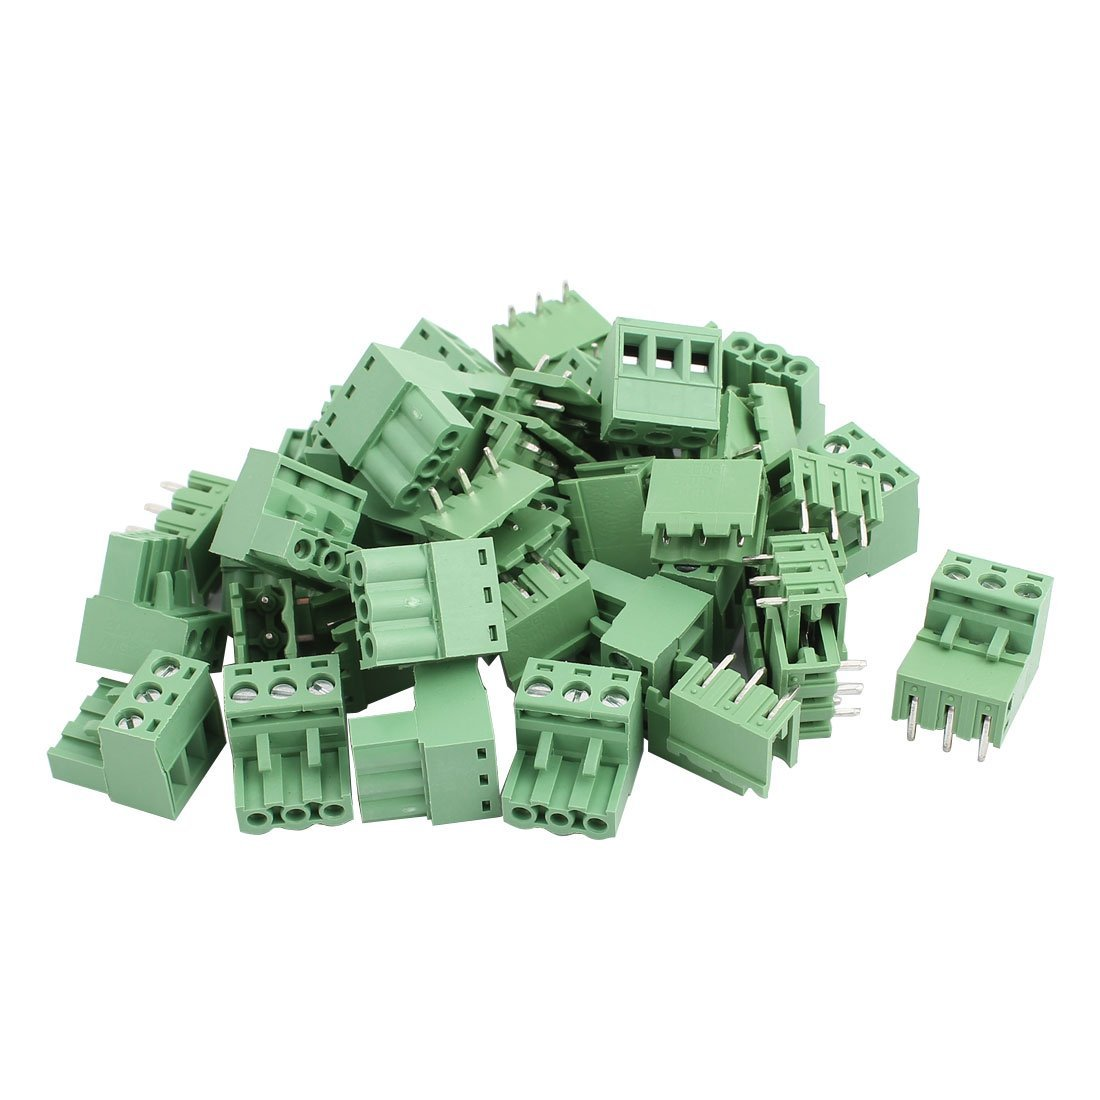 uxcell 22Pairs AC 300V 10A 3 Terminal 5.08mm Spacing PCB Screw Terminal Block Connector